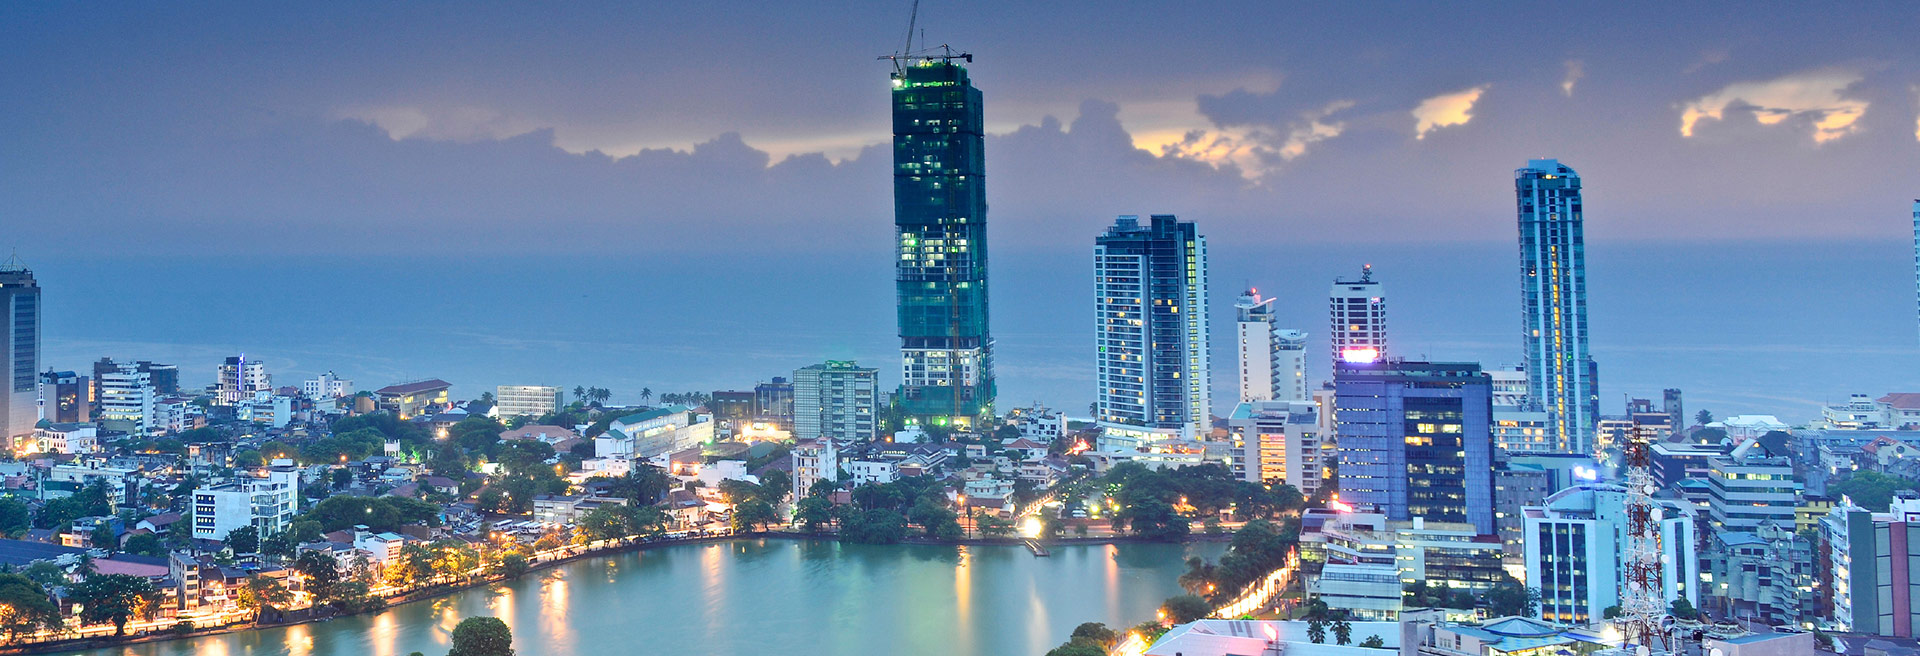 Colombo city during night